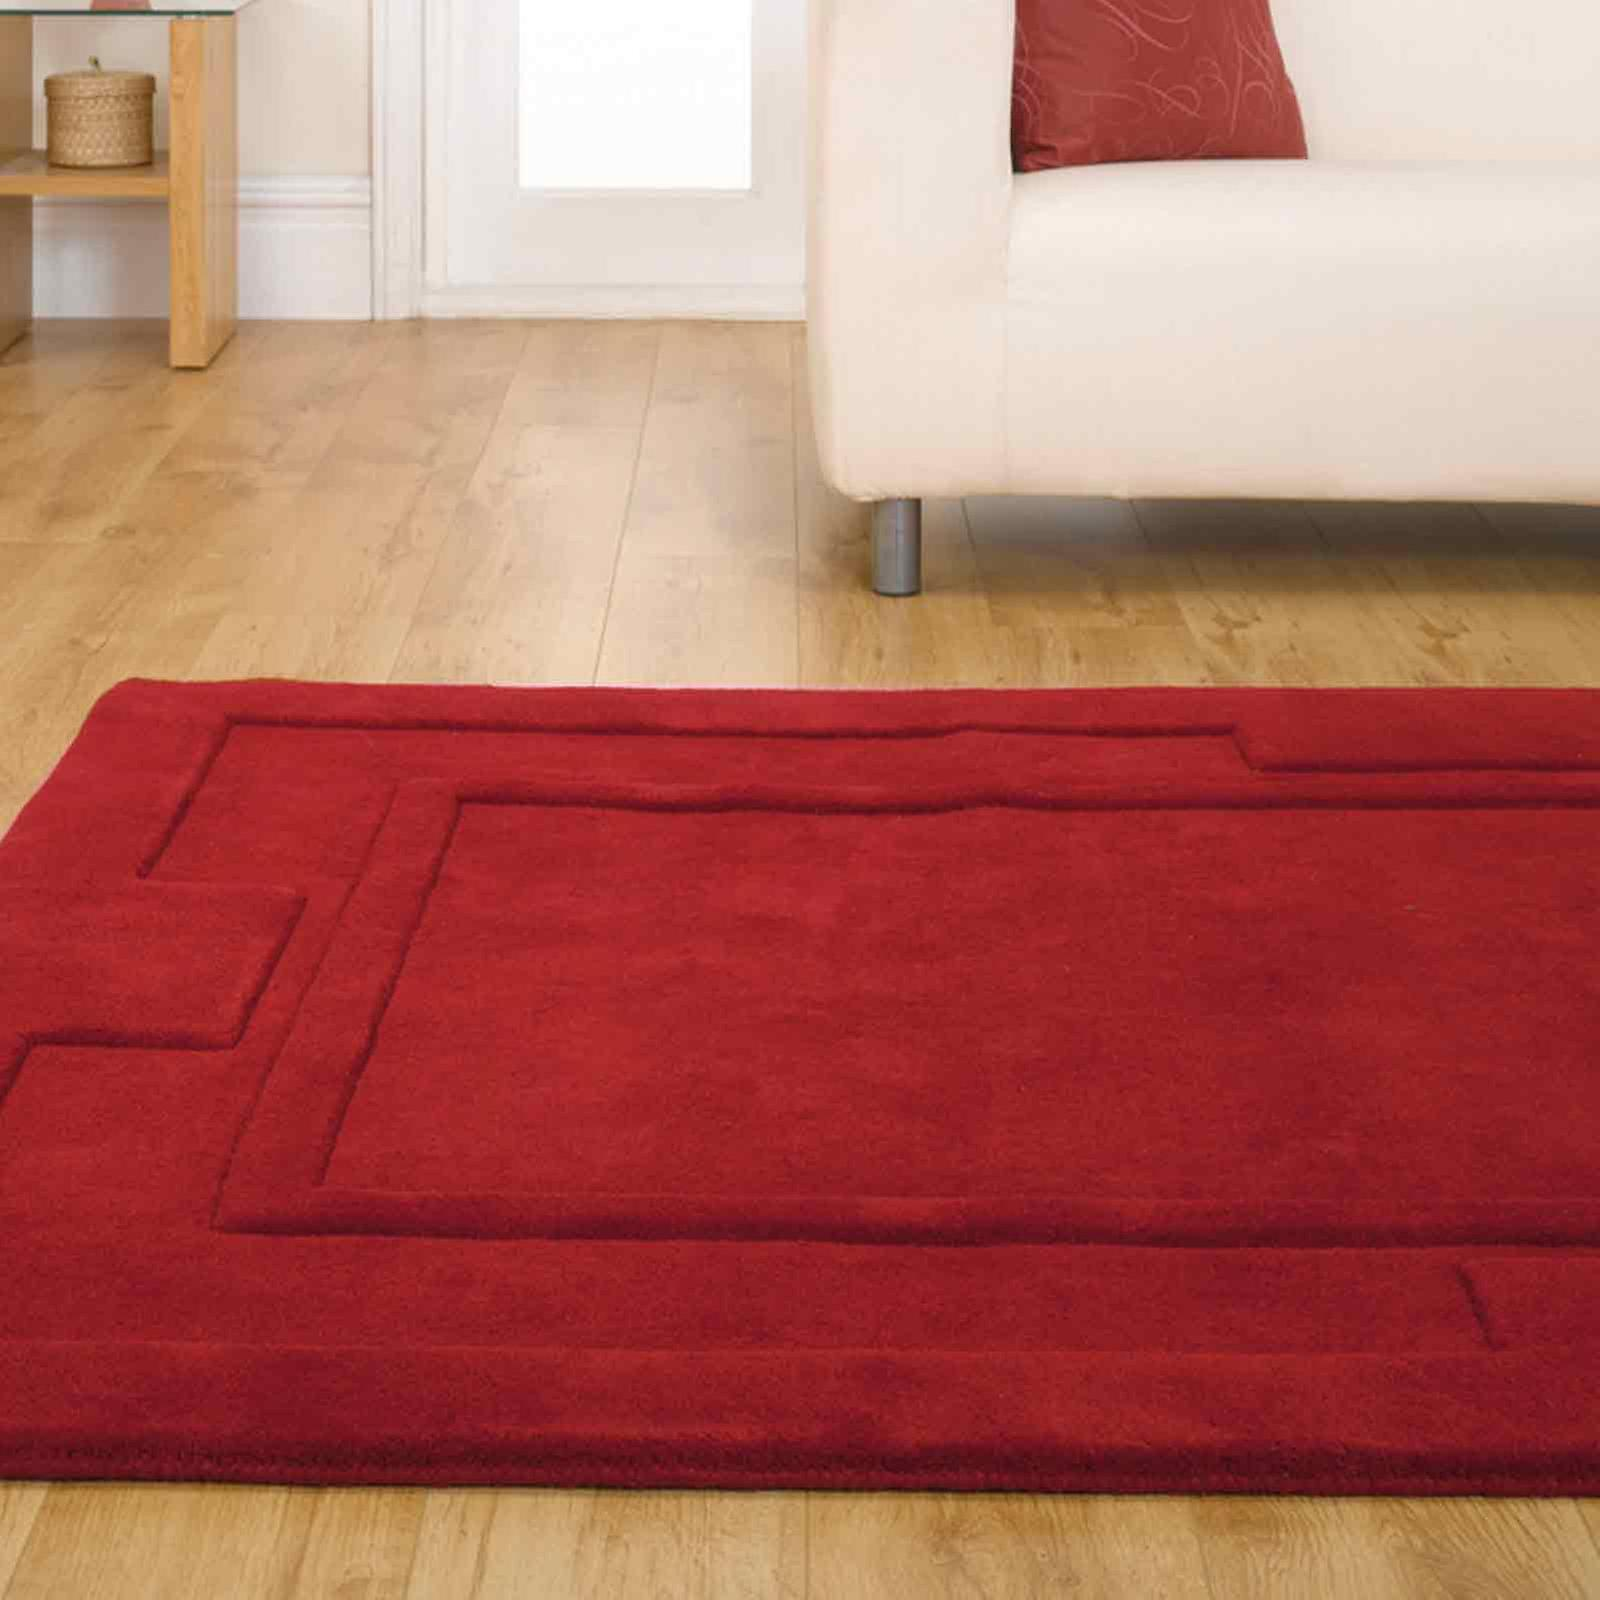 Sierra Apollo Rugs In Red - Pure Wool